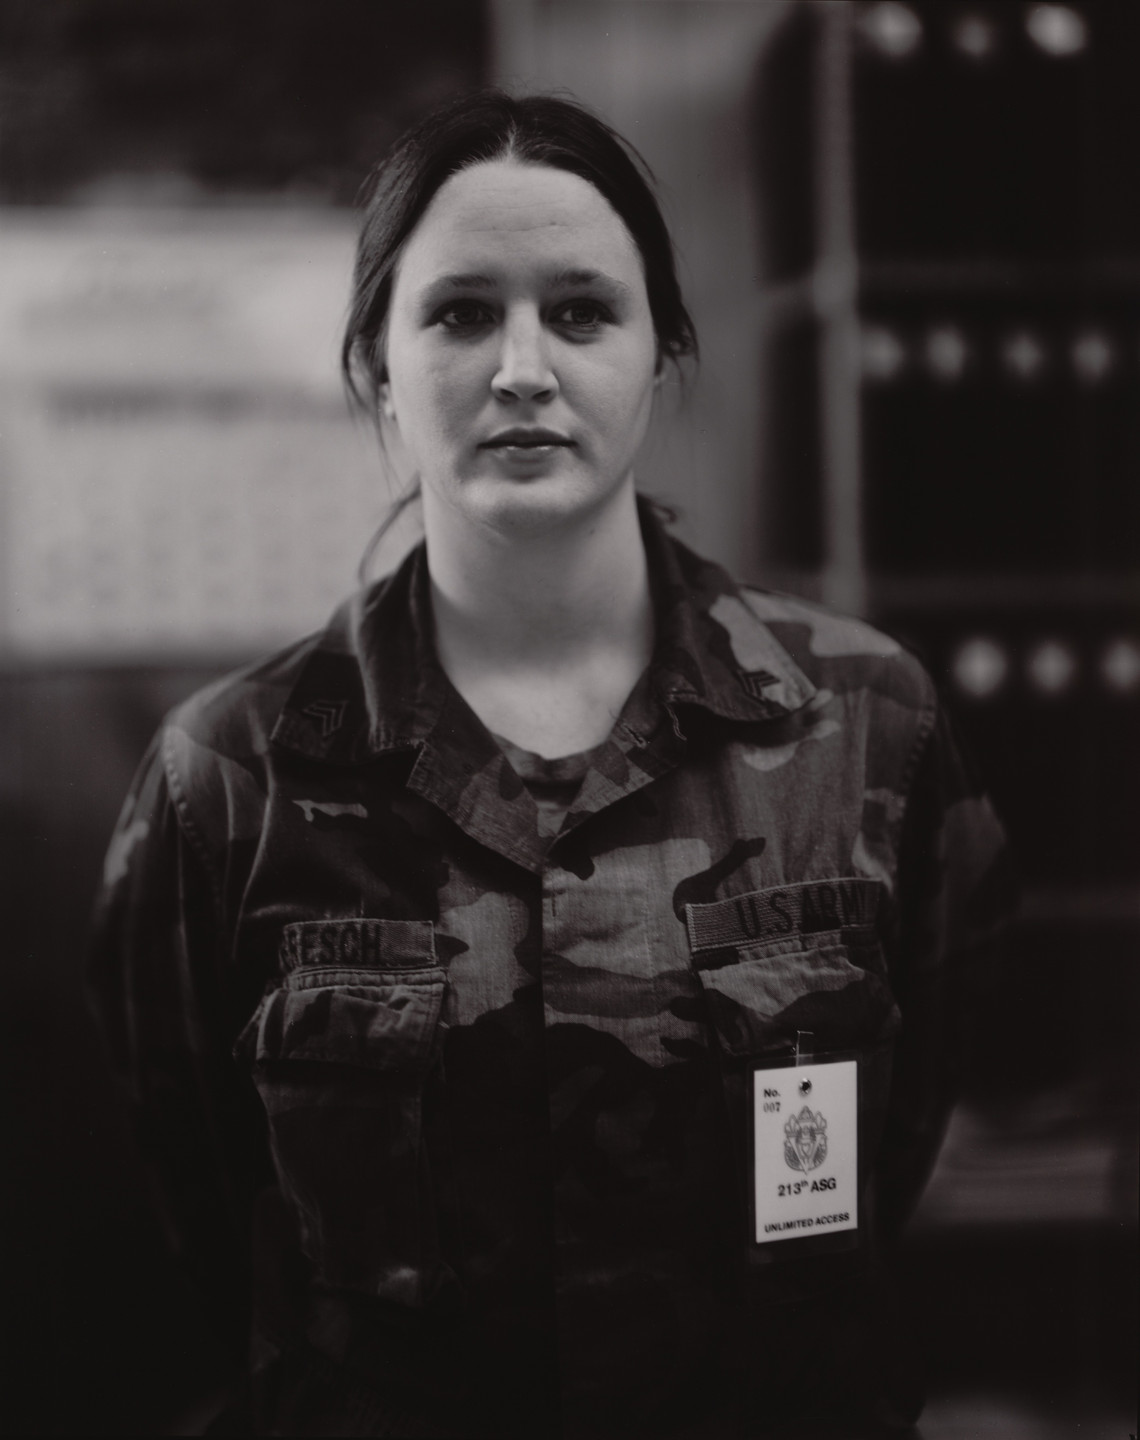 Judith Joy Ross. Karen J. Bresch, Full-Time Administrator of 3622 Maintenance Co., Assisting in Mobilization of Natl. Guard Unit 3622 for Operation Desert Shield. 1990